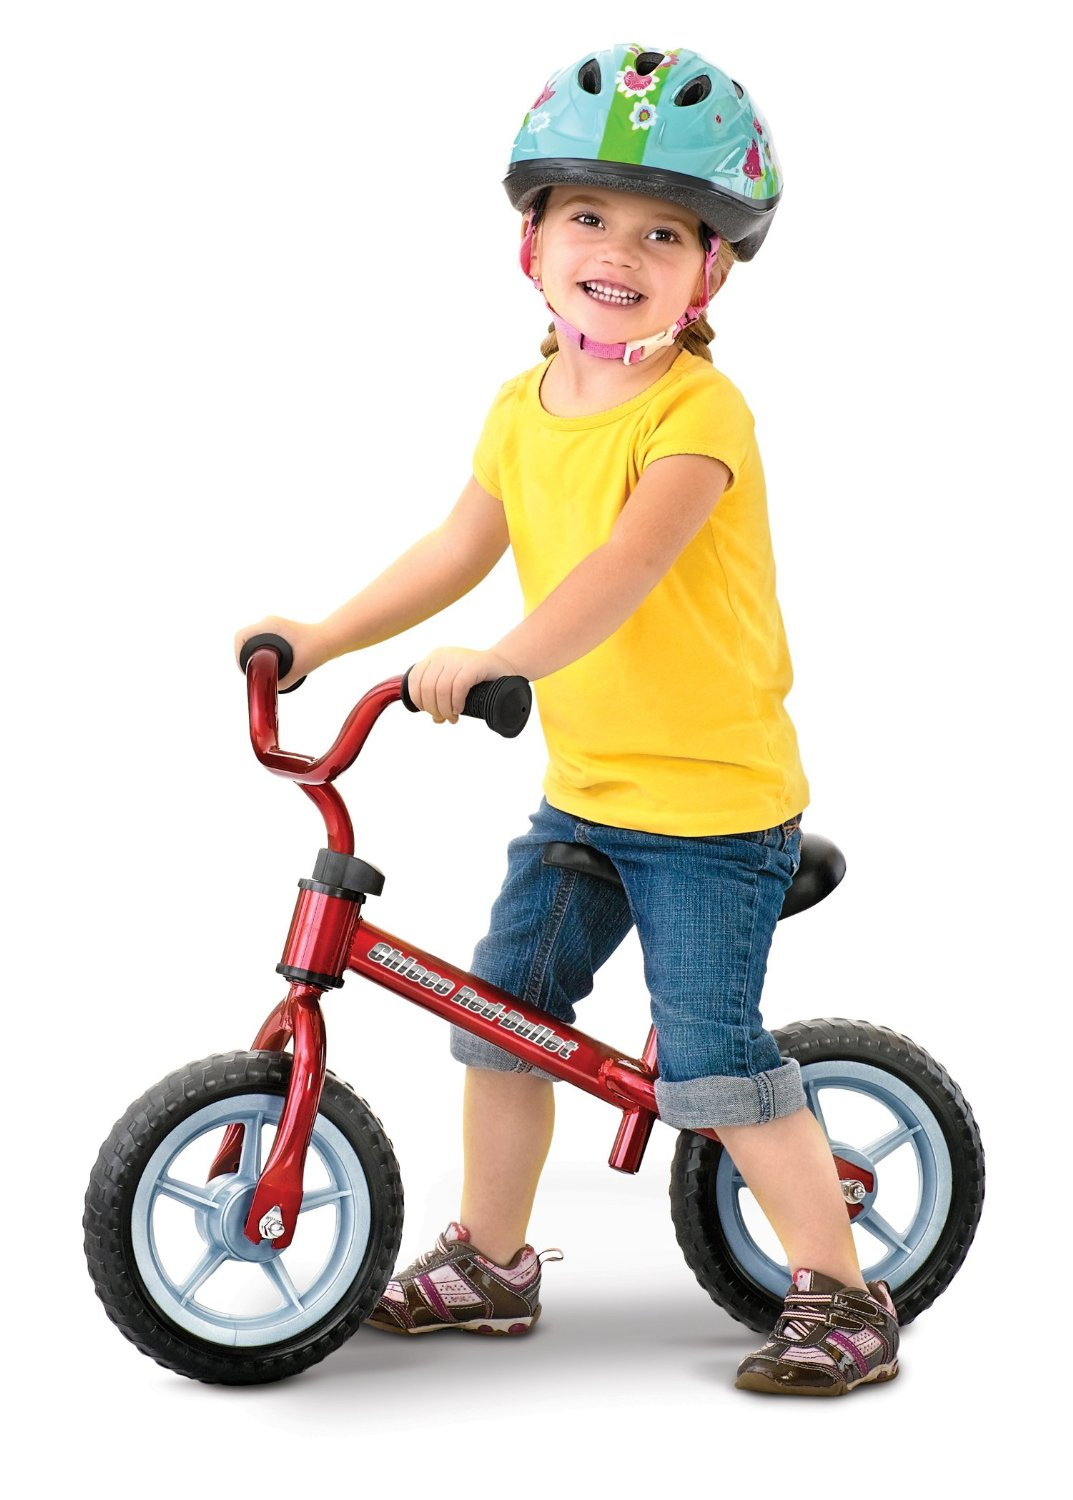 learn how to move your legs while riding a trike